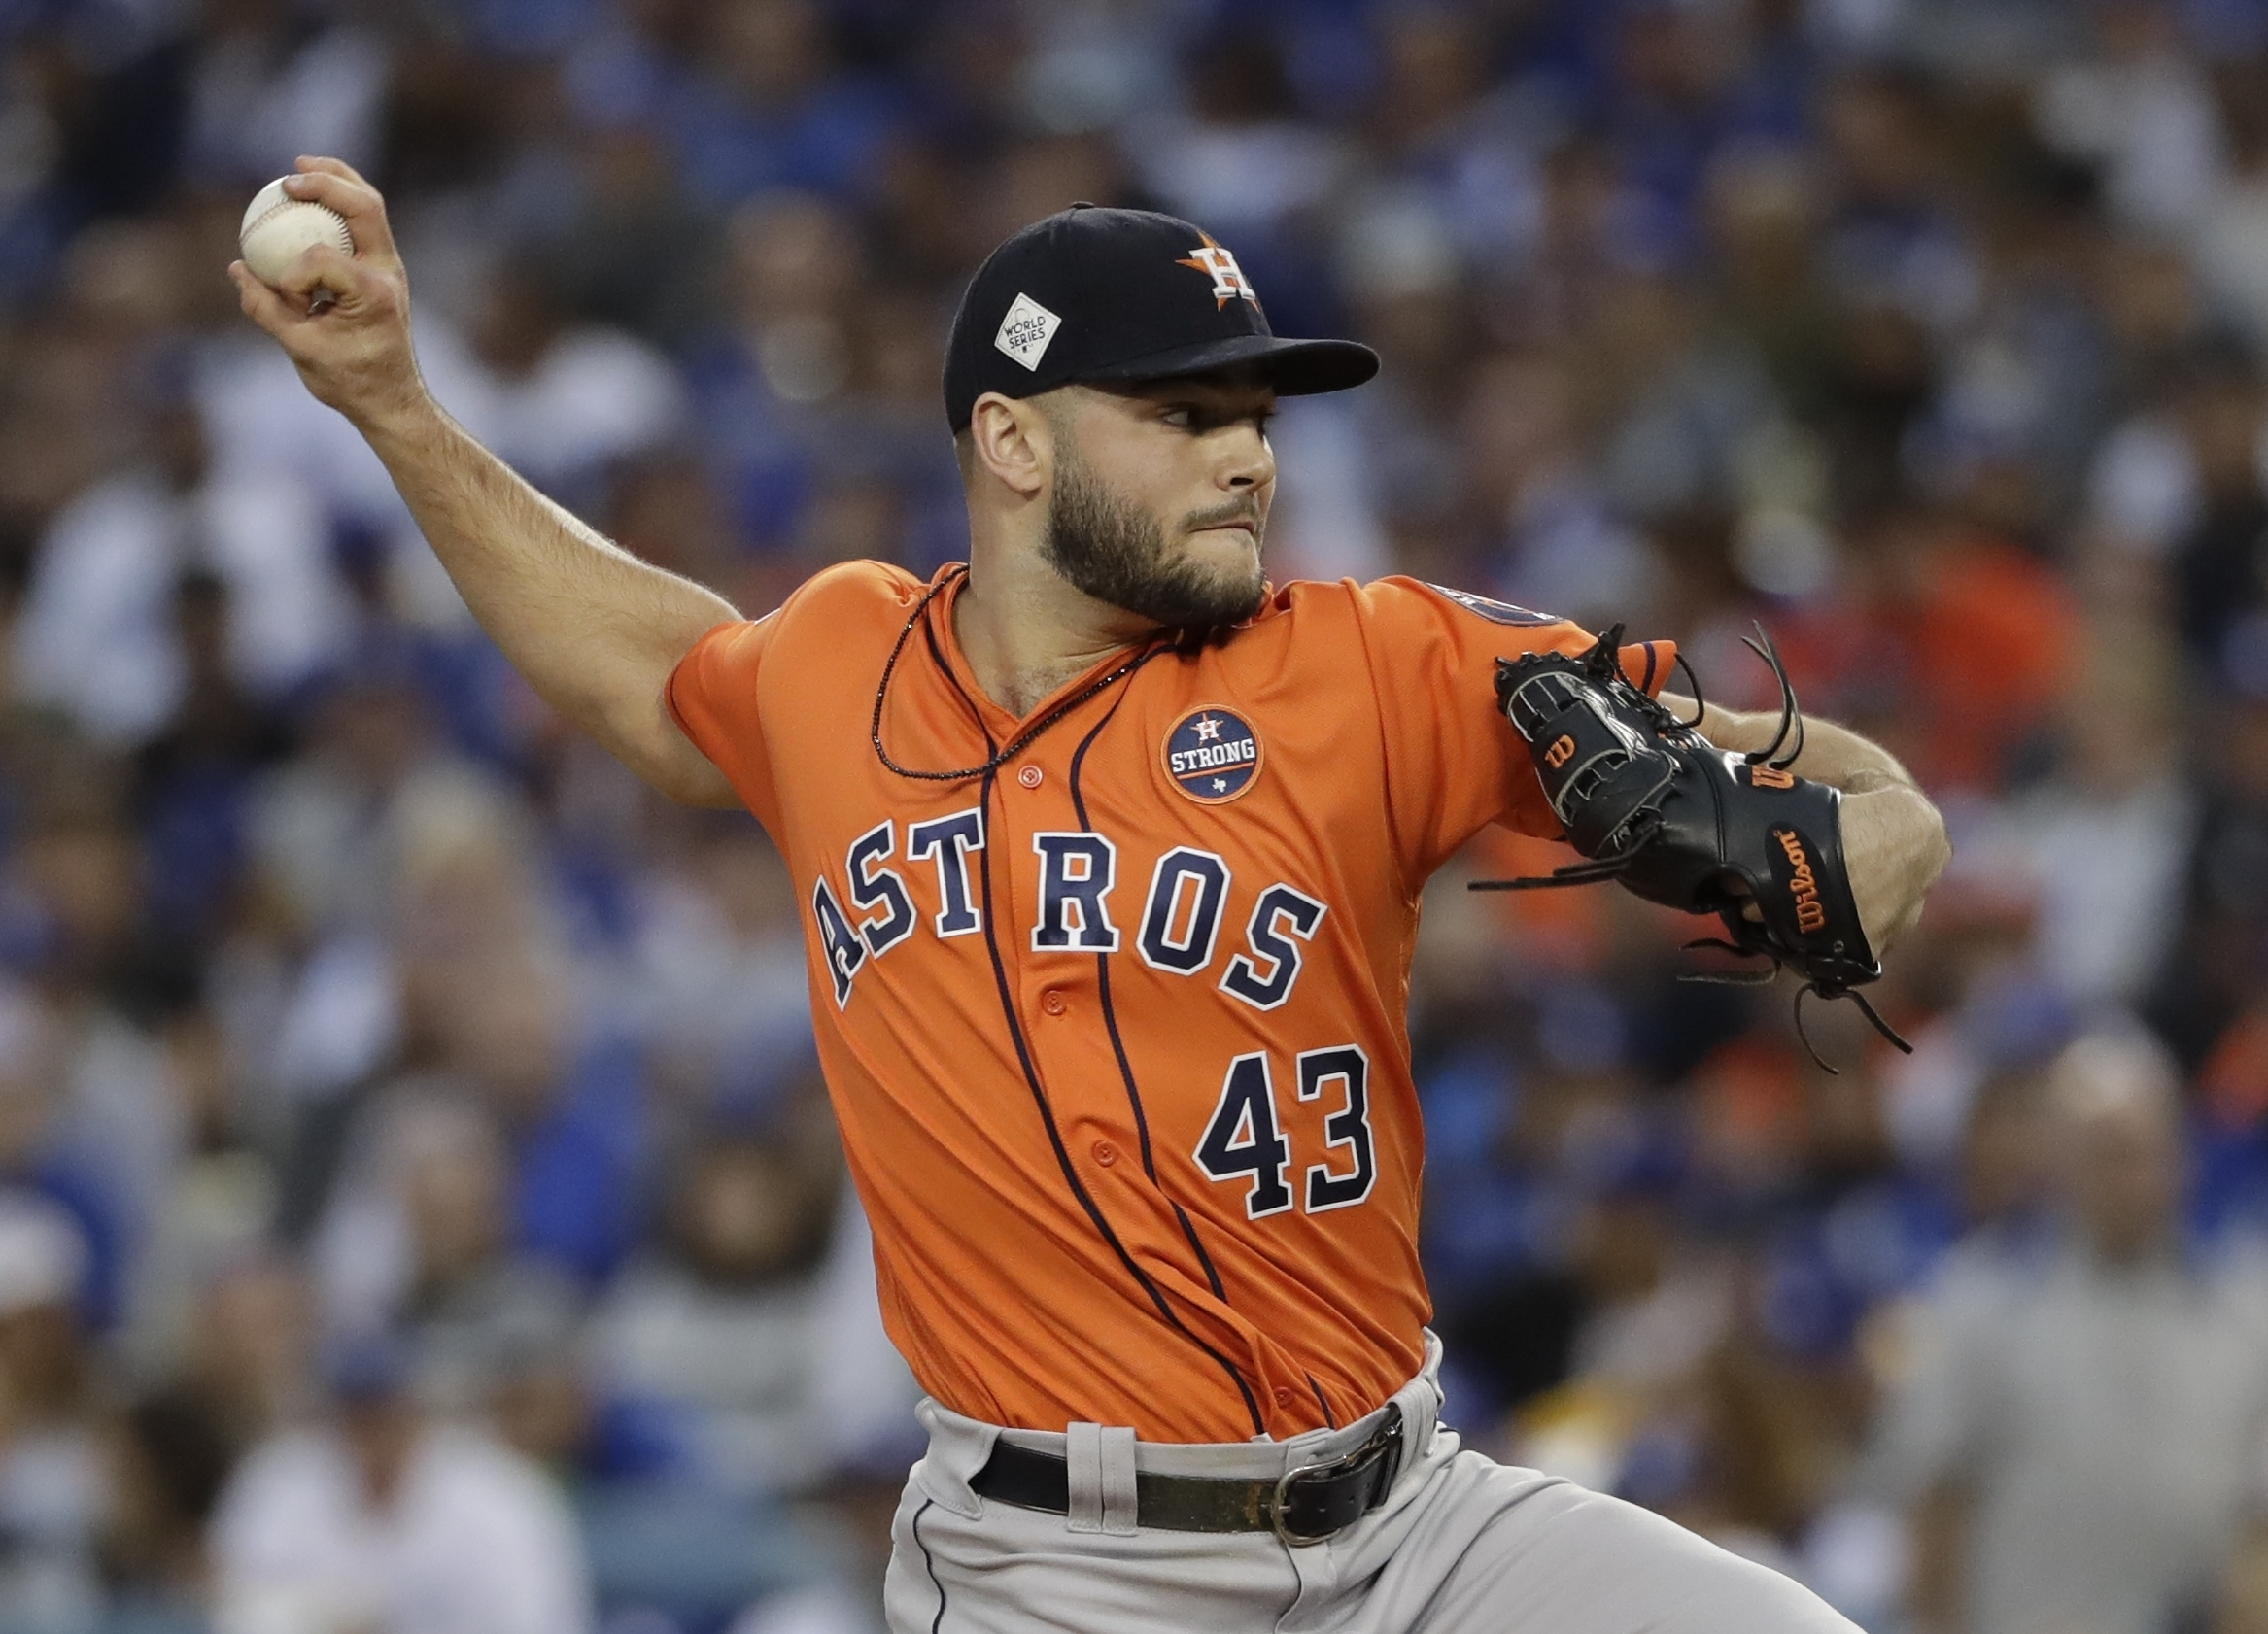 <div class='meta'><div class='origin-logo' data-origin='AP'></div><span class='caption-text' data-credit='AP'>Houston Astros starting pitcher Lance McCullers Jr. throws during the first inning of Game 7. (AP Photo/Matt Slocum)</span></div>